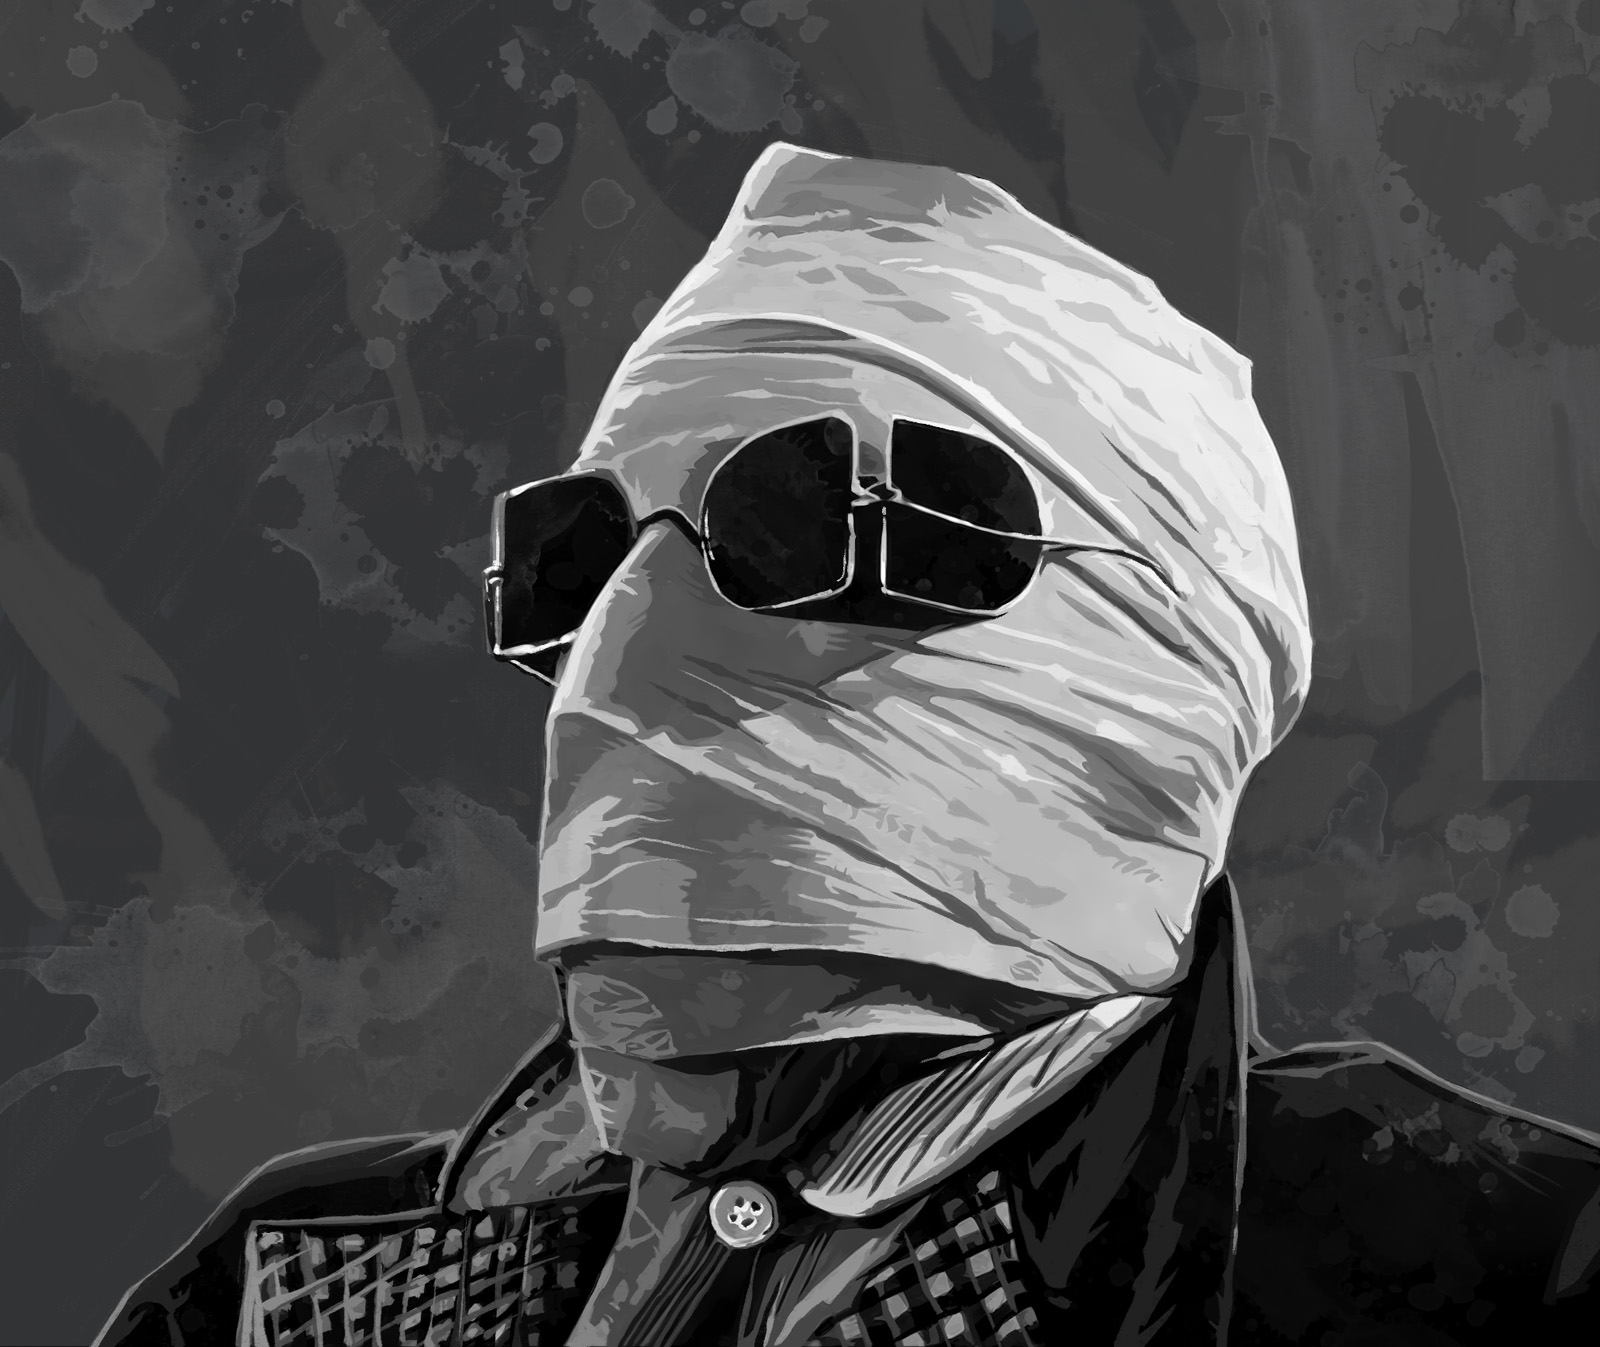 the invisible man d The invisible man is a song by english rock band queen, written by drummer roger taylor but credited to the band as a whole originally released on the band's 1989 album the miracle, it was also released as a single that same year.